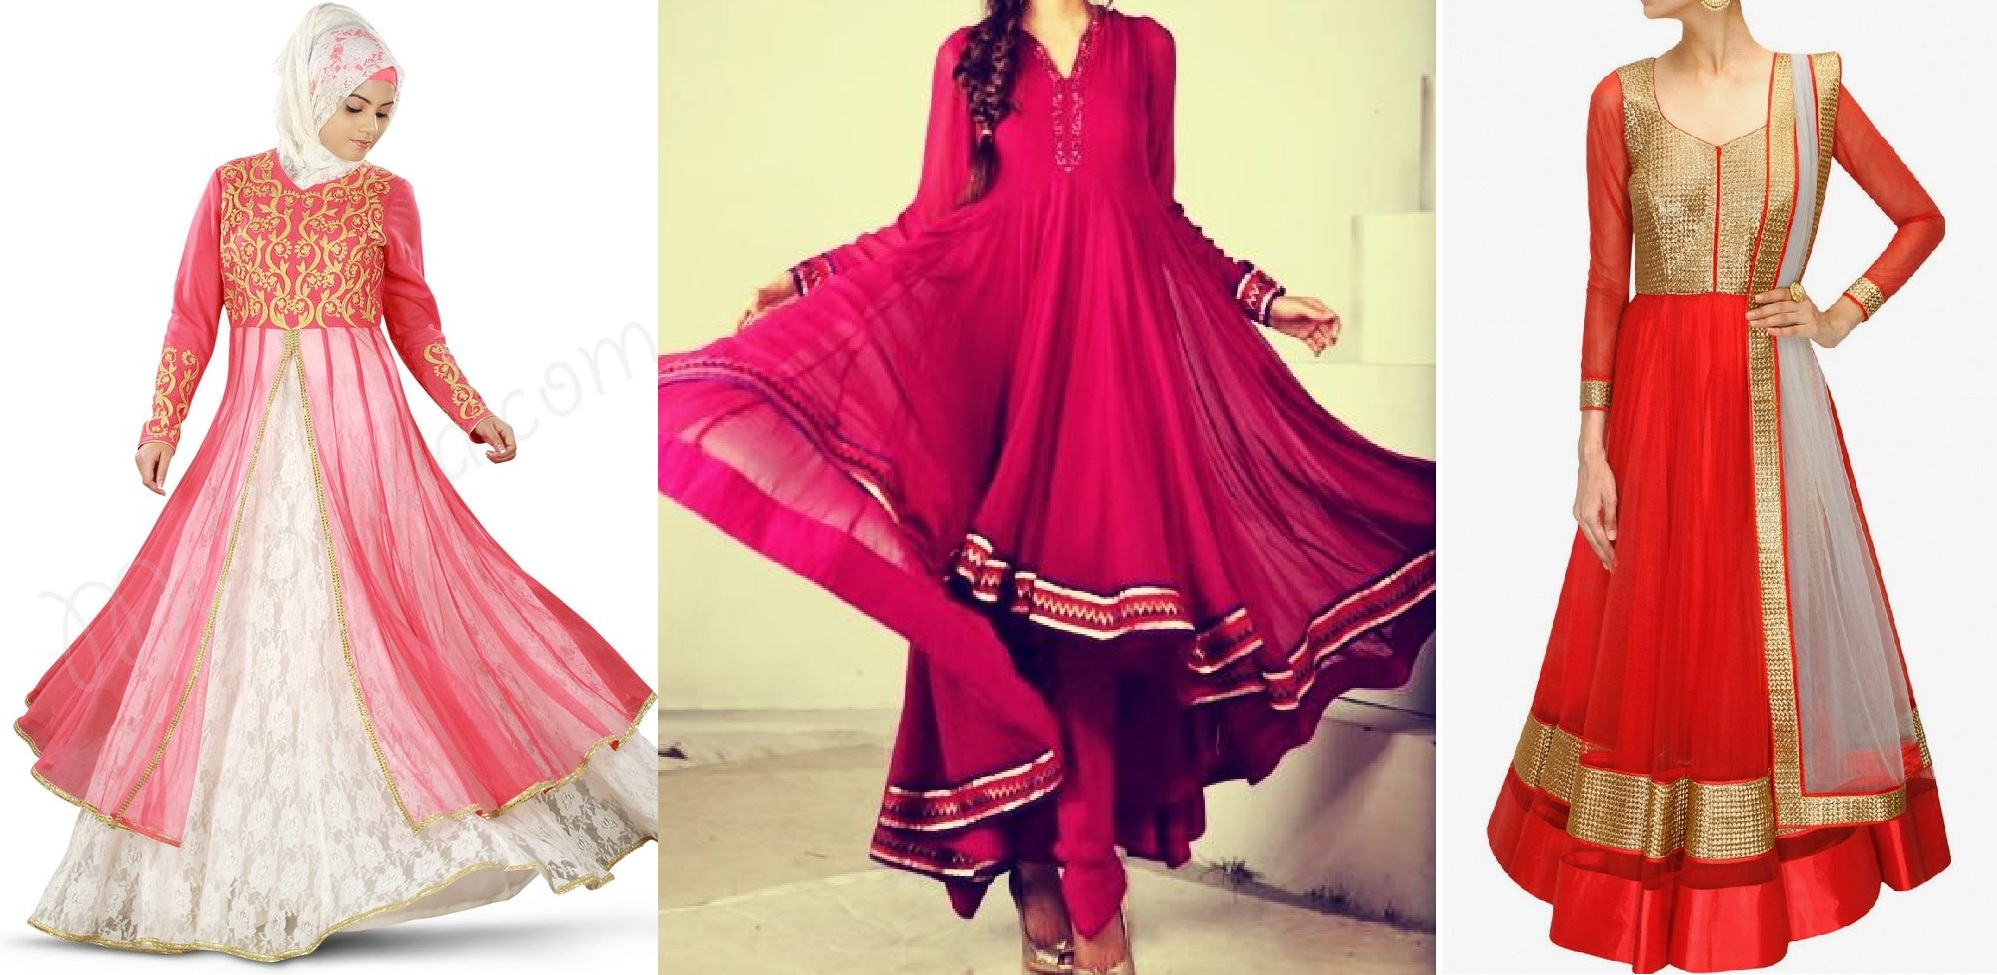 Latest Collection of Umbrella Dresses & Frocks Designs 2015-2016 (2)